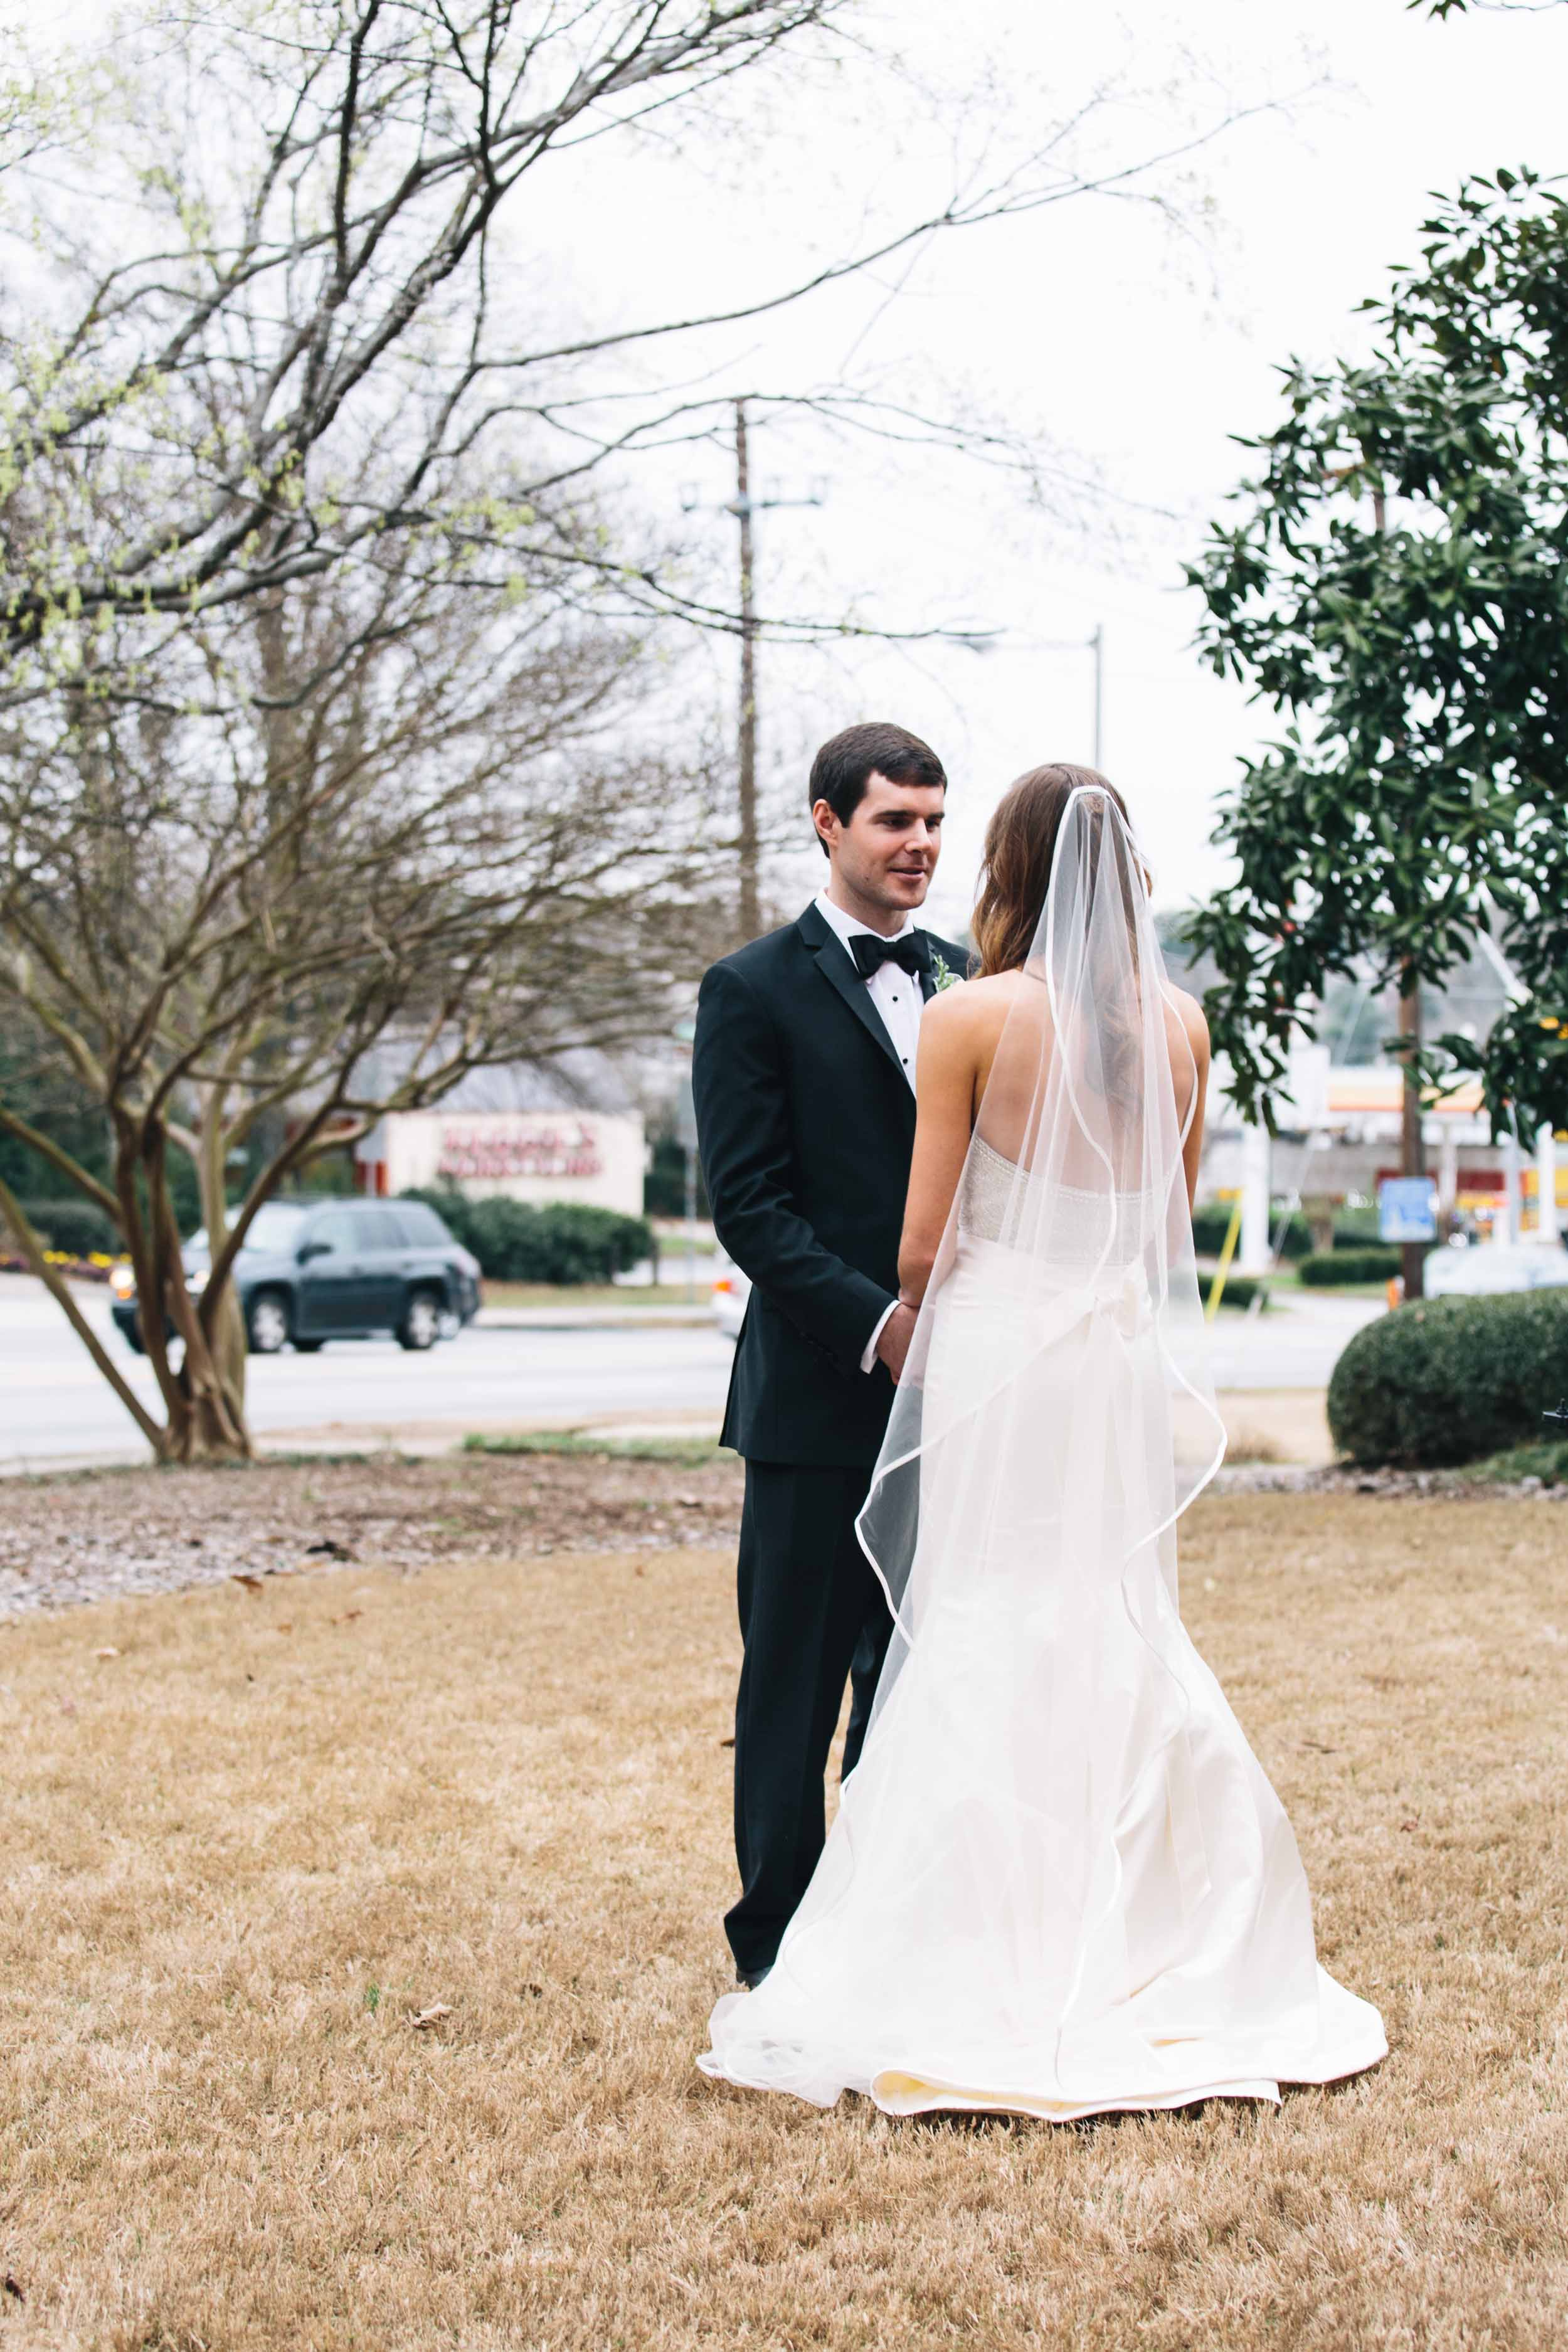 jimmy-rowalt-atlanta-wedding-photography-104.jpg